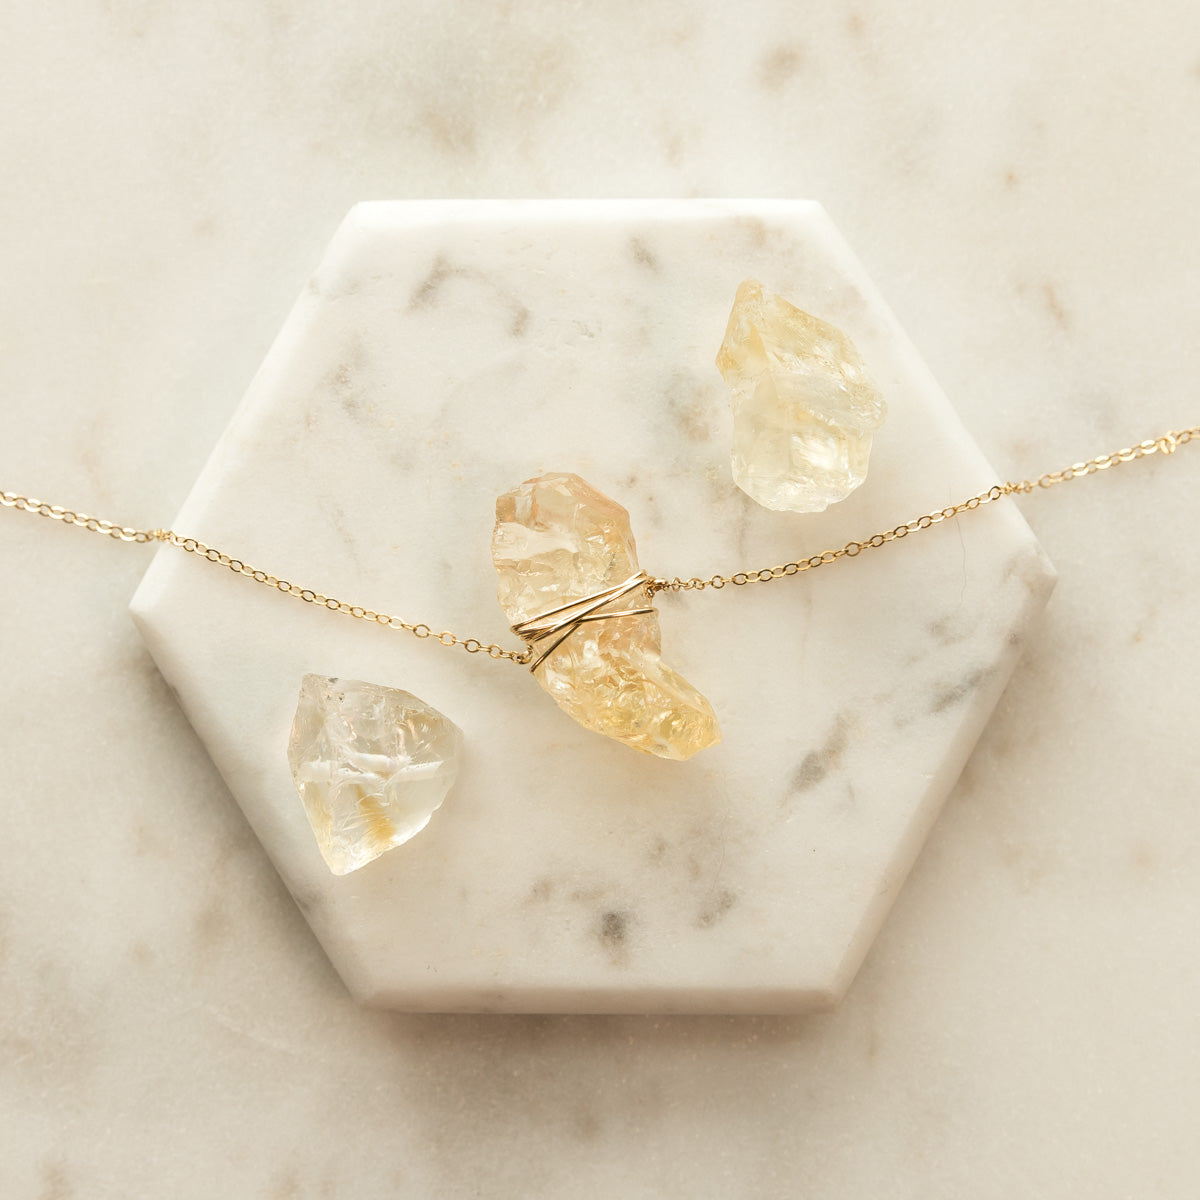 AAA Grade Raw Citrine Gemstone Gold Wire Wrap Necklace - The Queen Bee